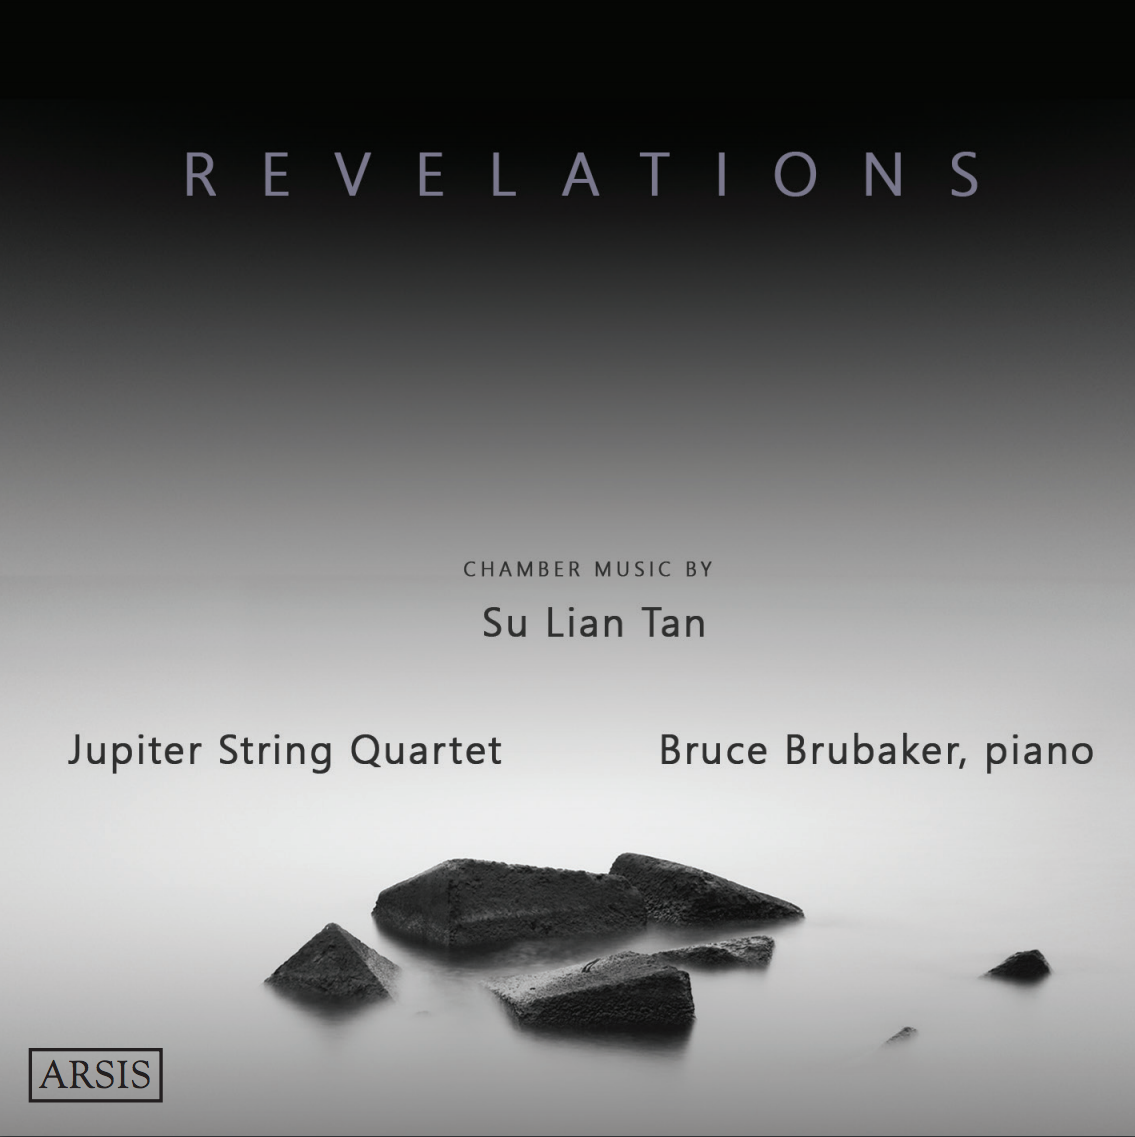 Revelations - Chamber Music by Su Lian TanFeaturing Jupiter String Quartet and Bruce Brubaker, piano